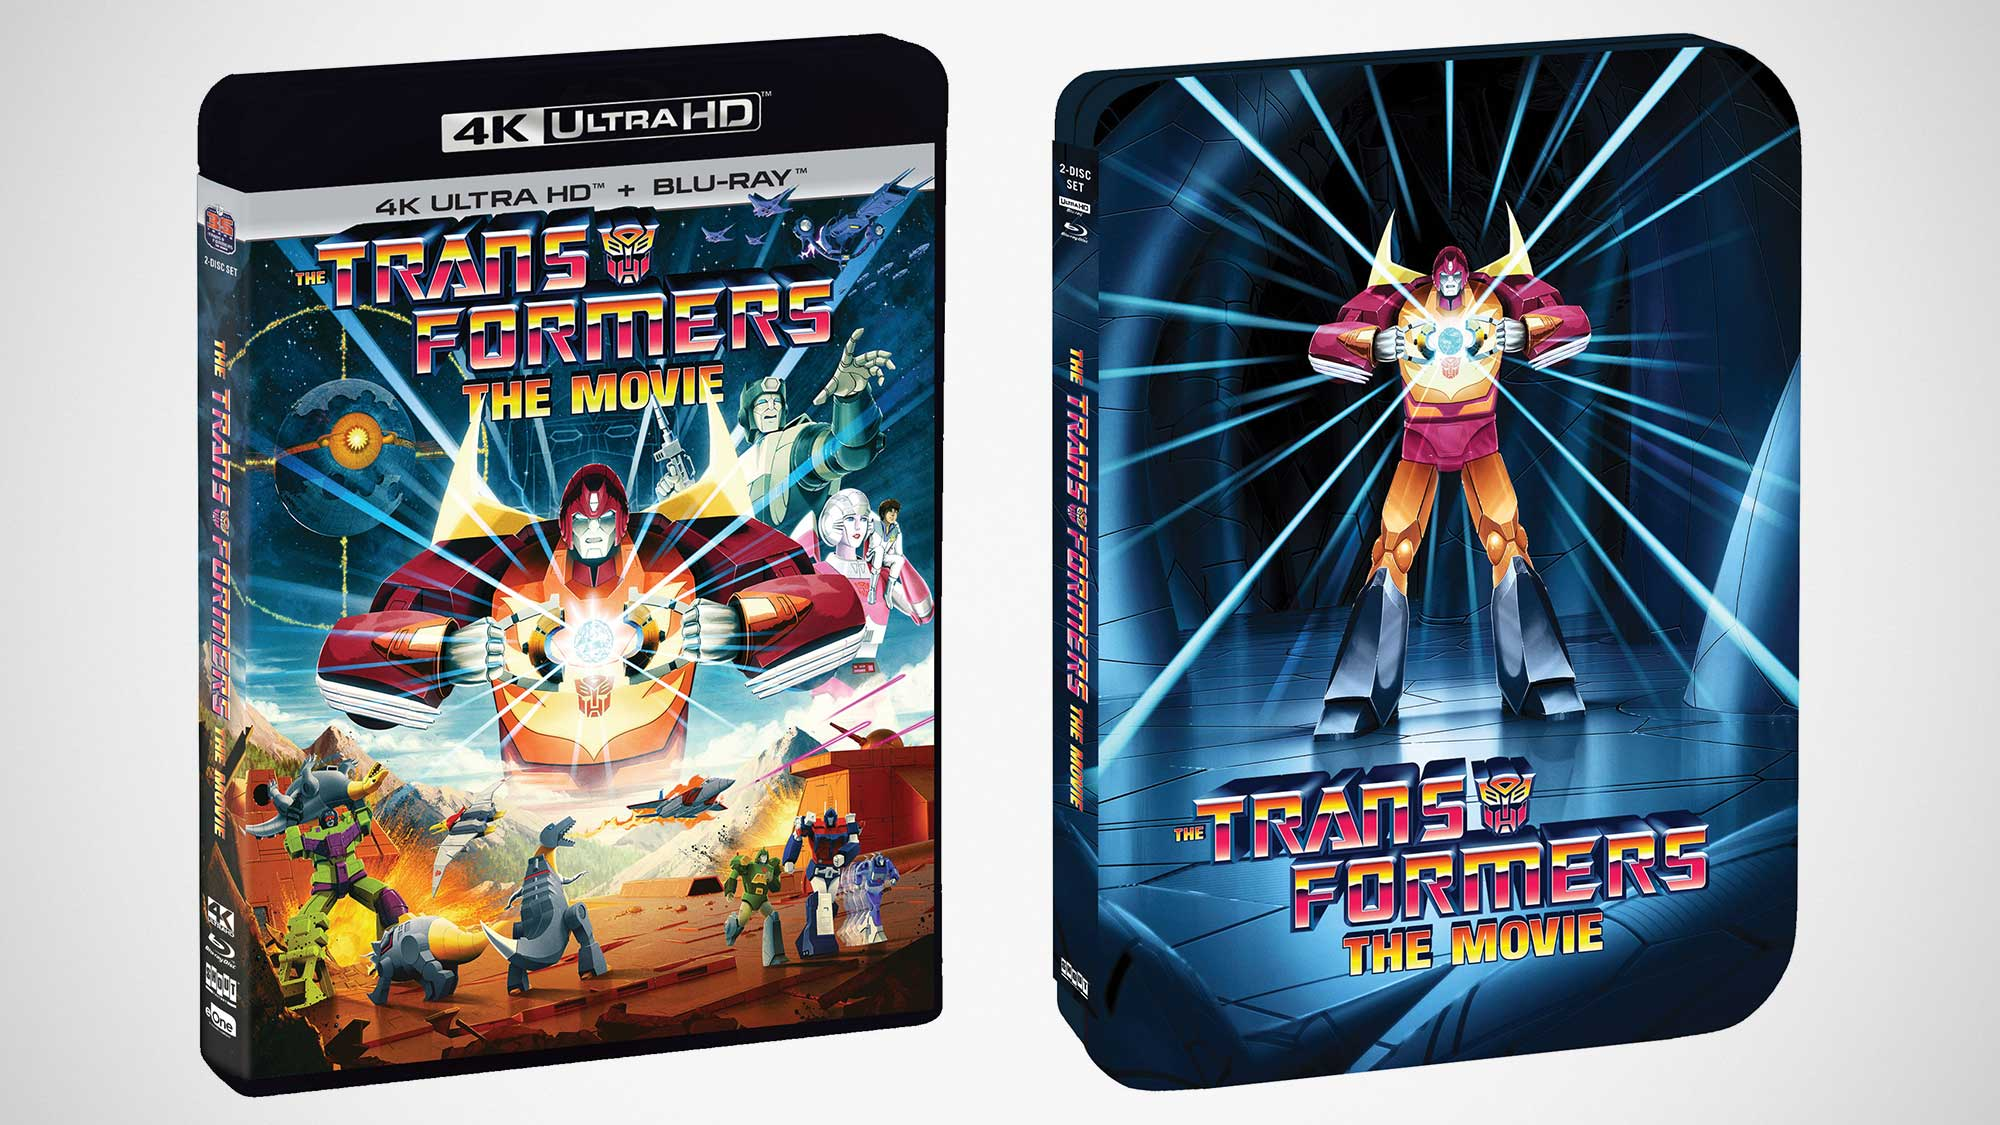 Transformers The Movie Re-released in 4K UHD